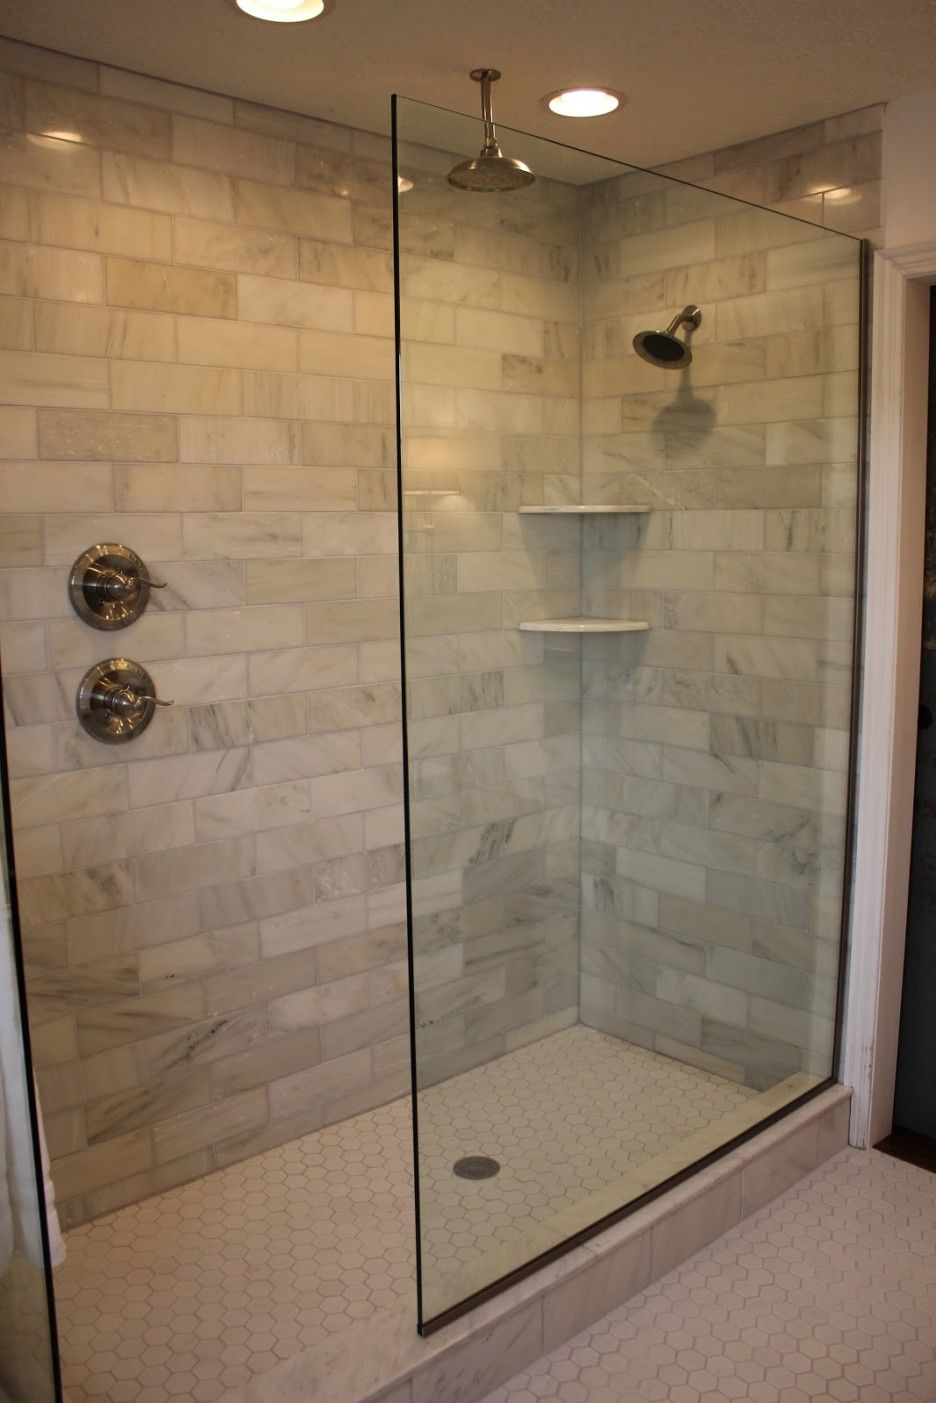 Ordinaire Doorless Walk In Shower Designs. Shower Handle On Separate Wall